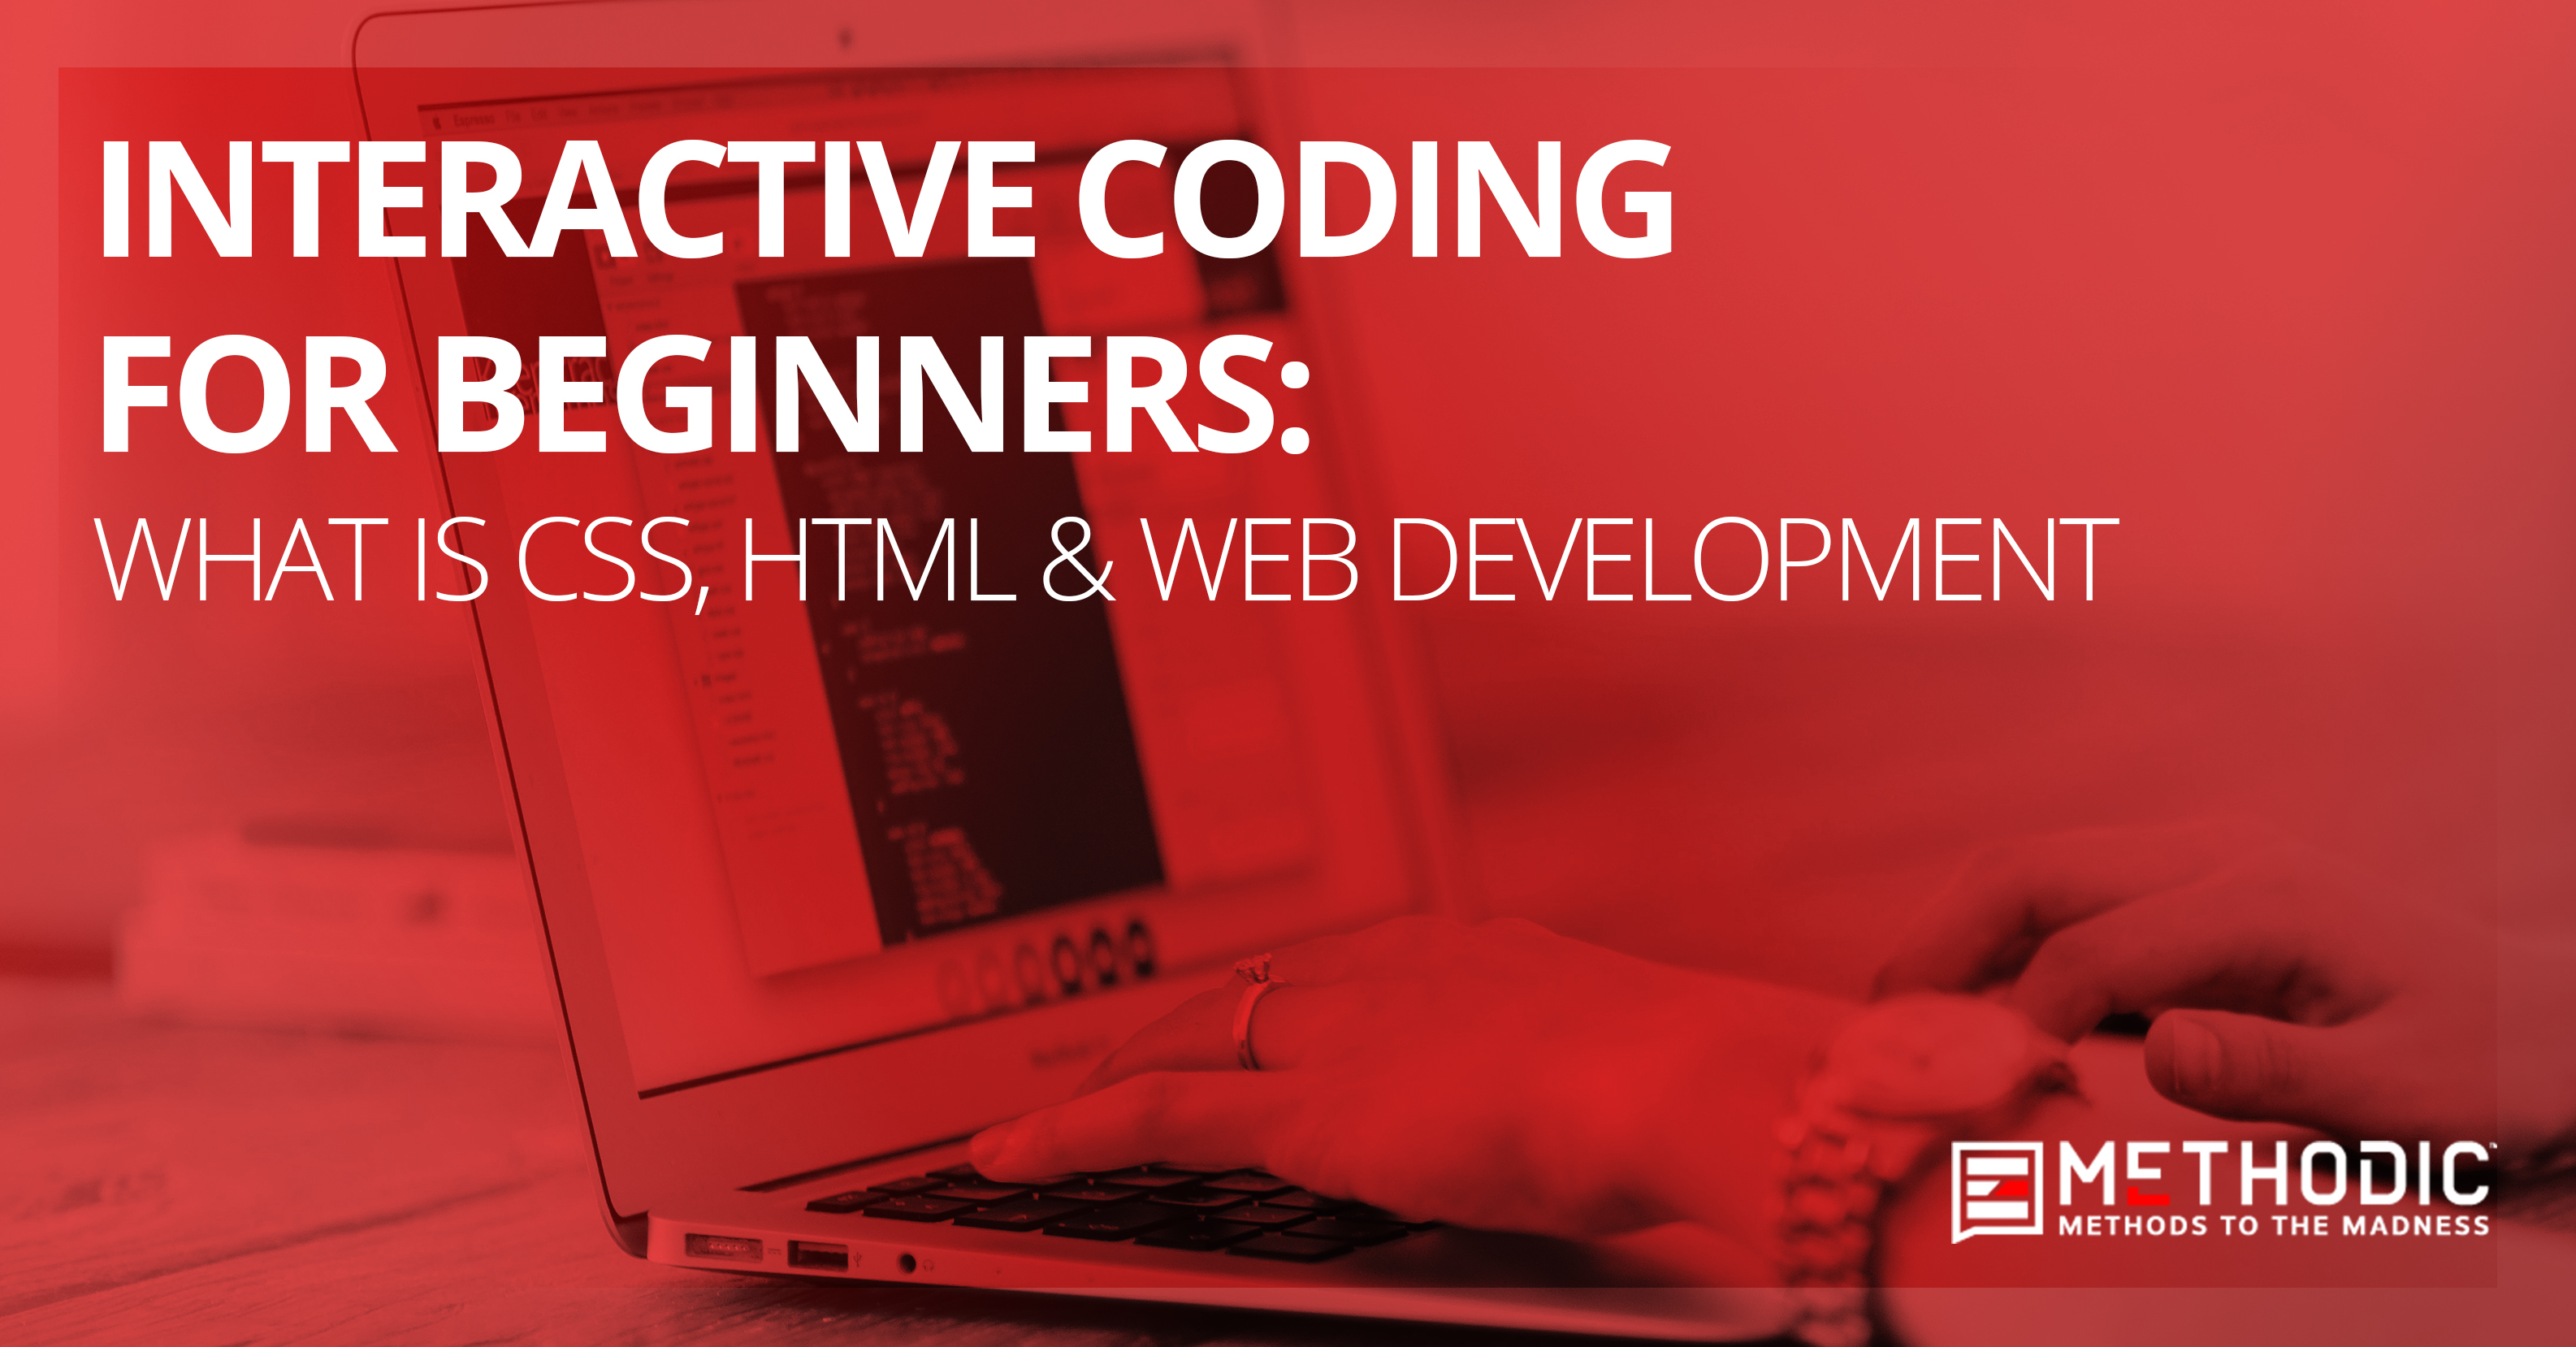 Interactive Coding for Beginners: What is CSS, HTML & Web Development